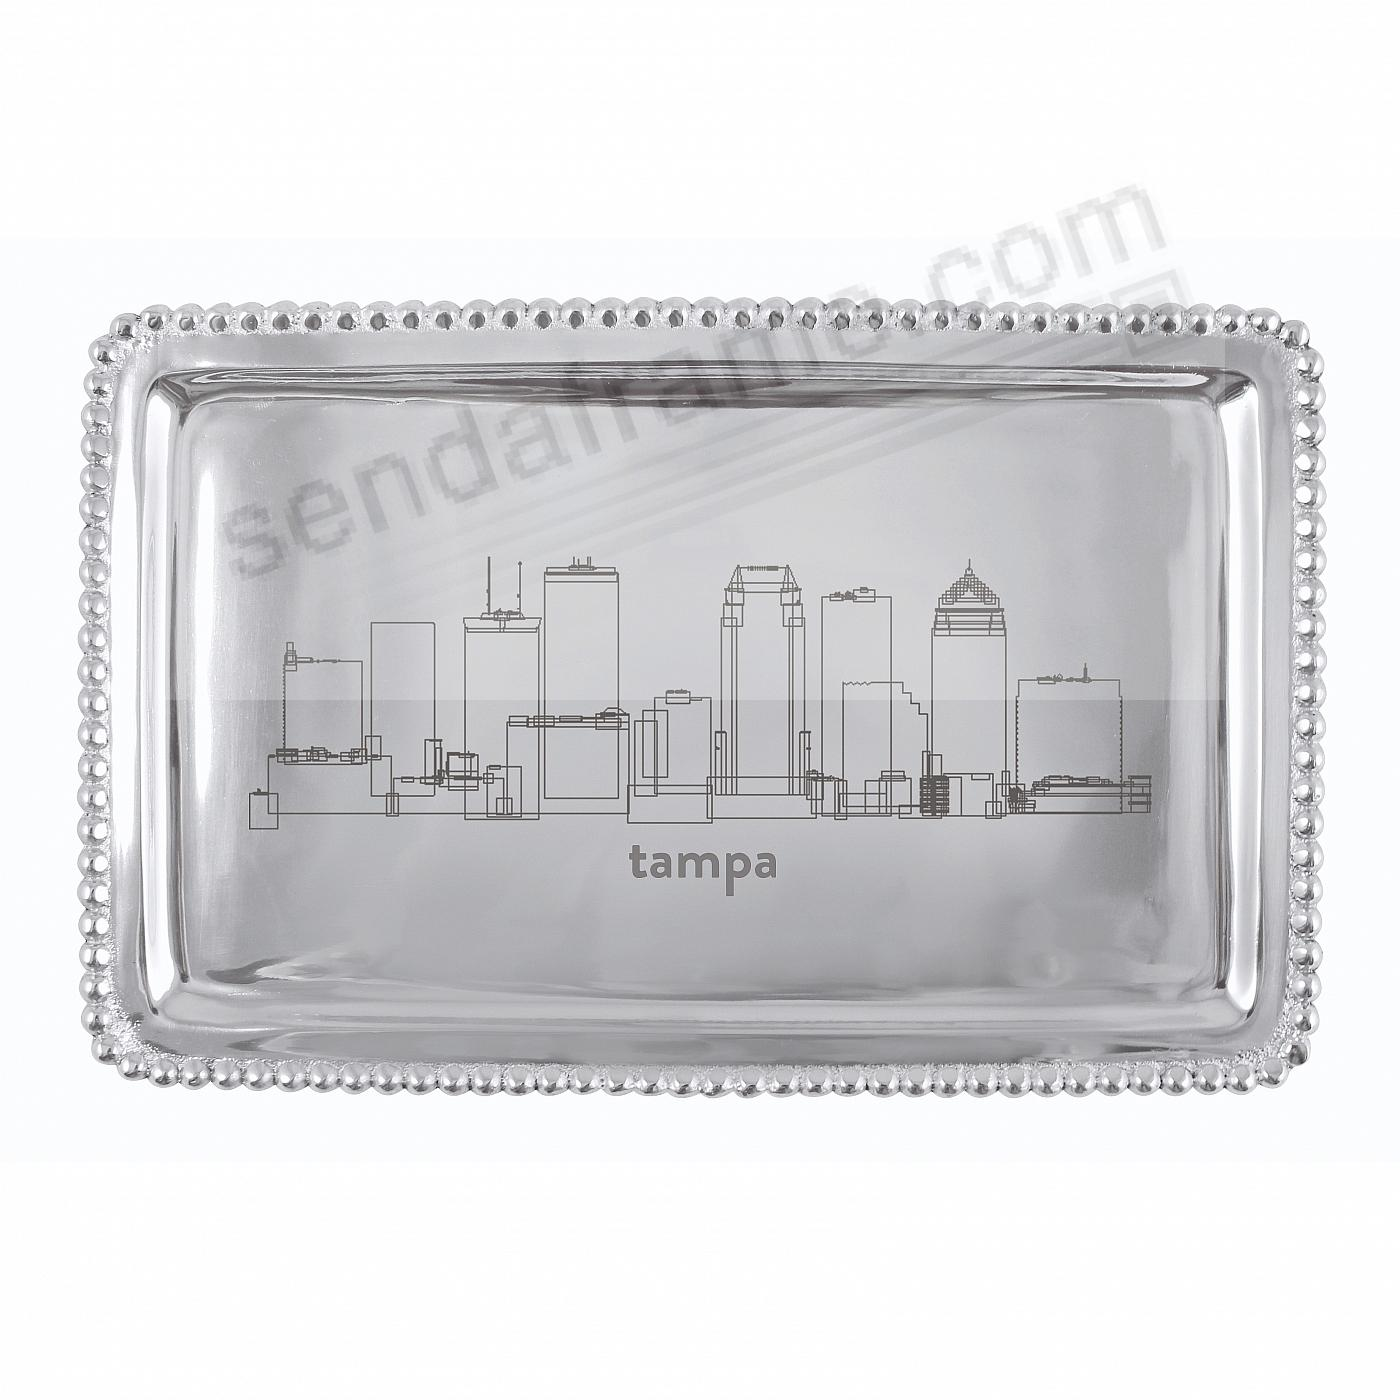 The TAMPA-FLORIDA CITYSCAPE BEADED BUFFET TRAY crafted by Mariposa®